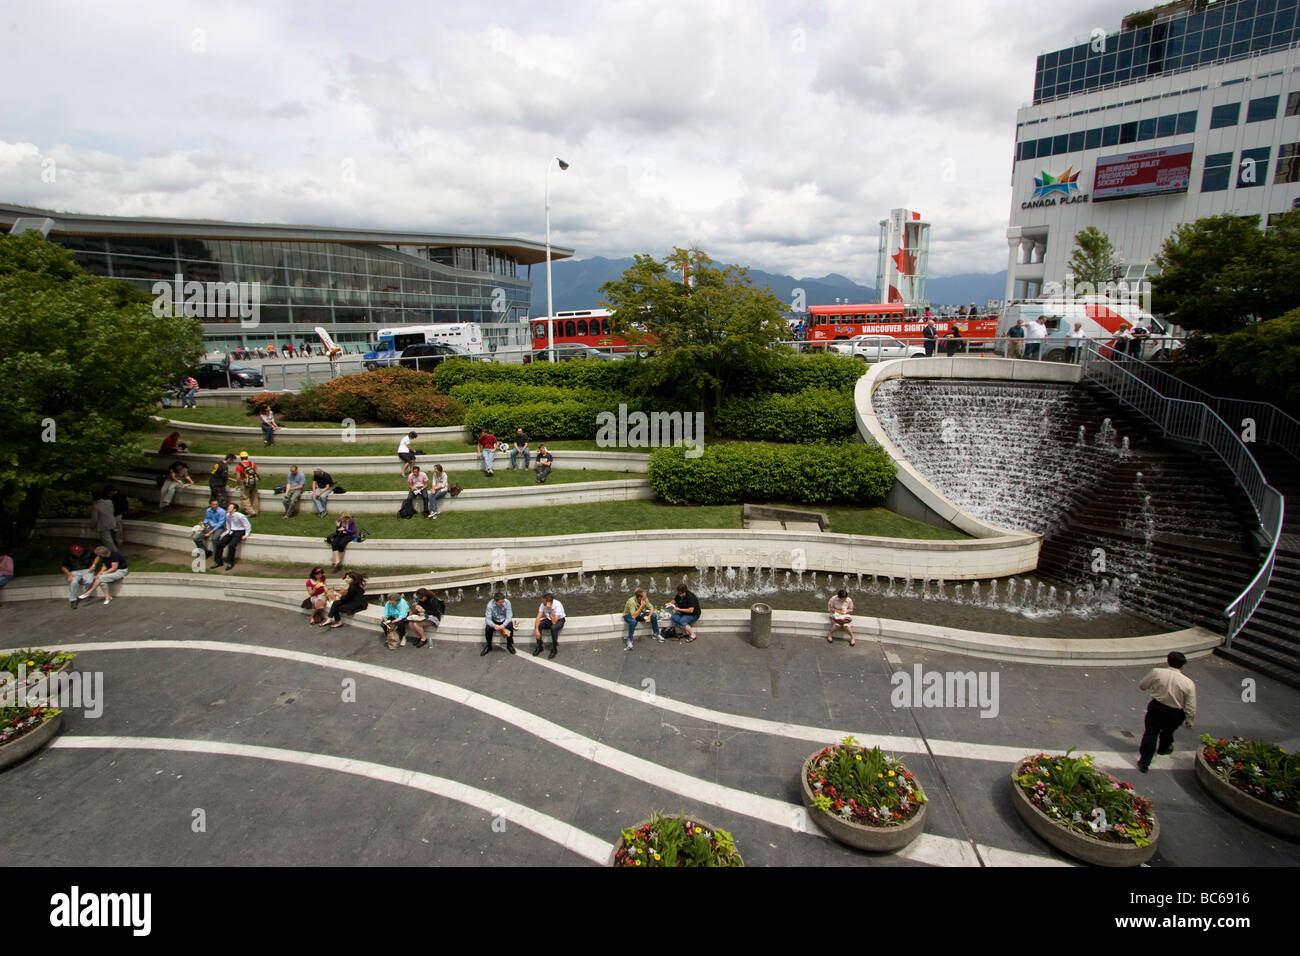 Canada place downtown Vancouver office workers having lunch by fountain outside food hall waterfront centre mall - Stock Image